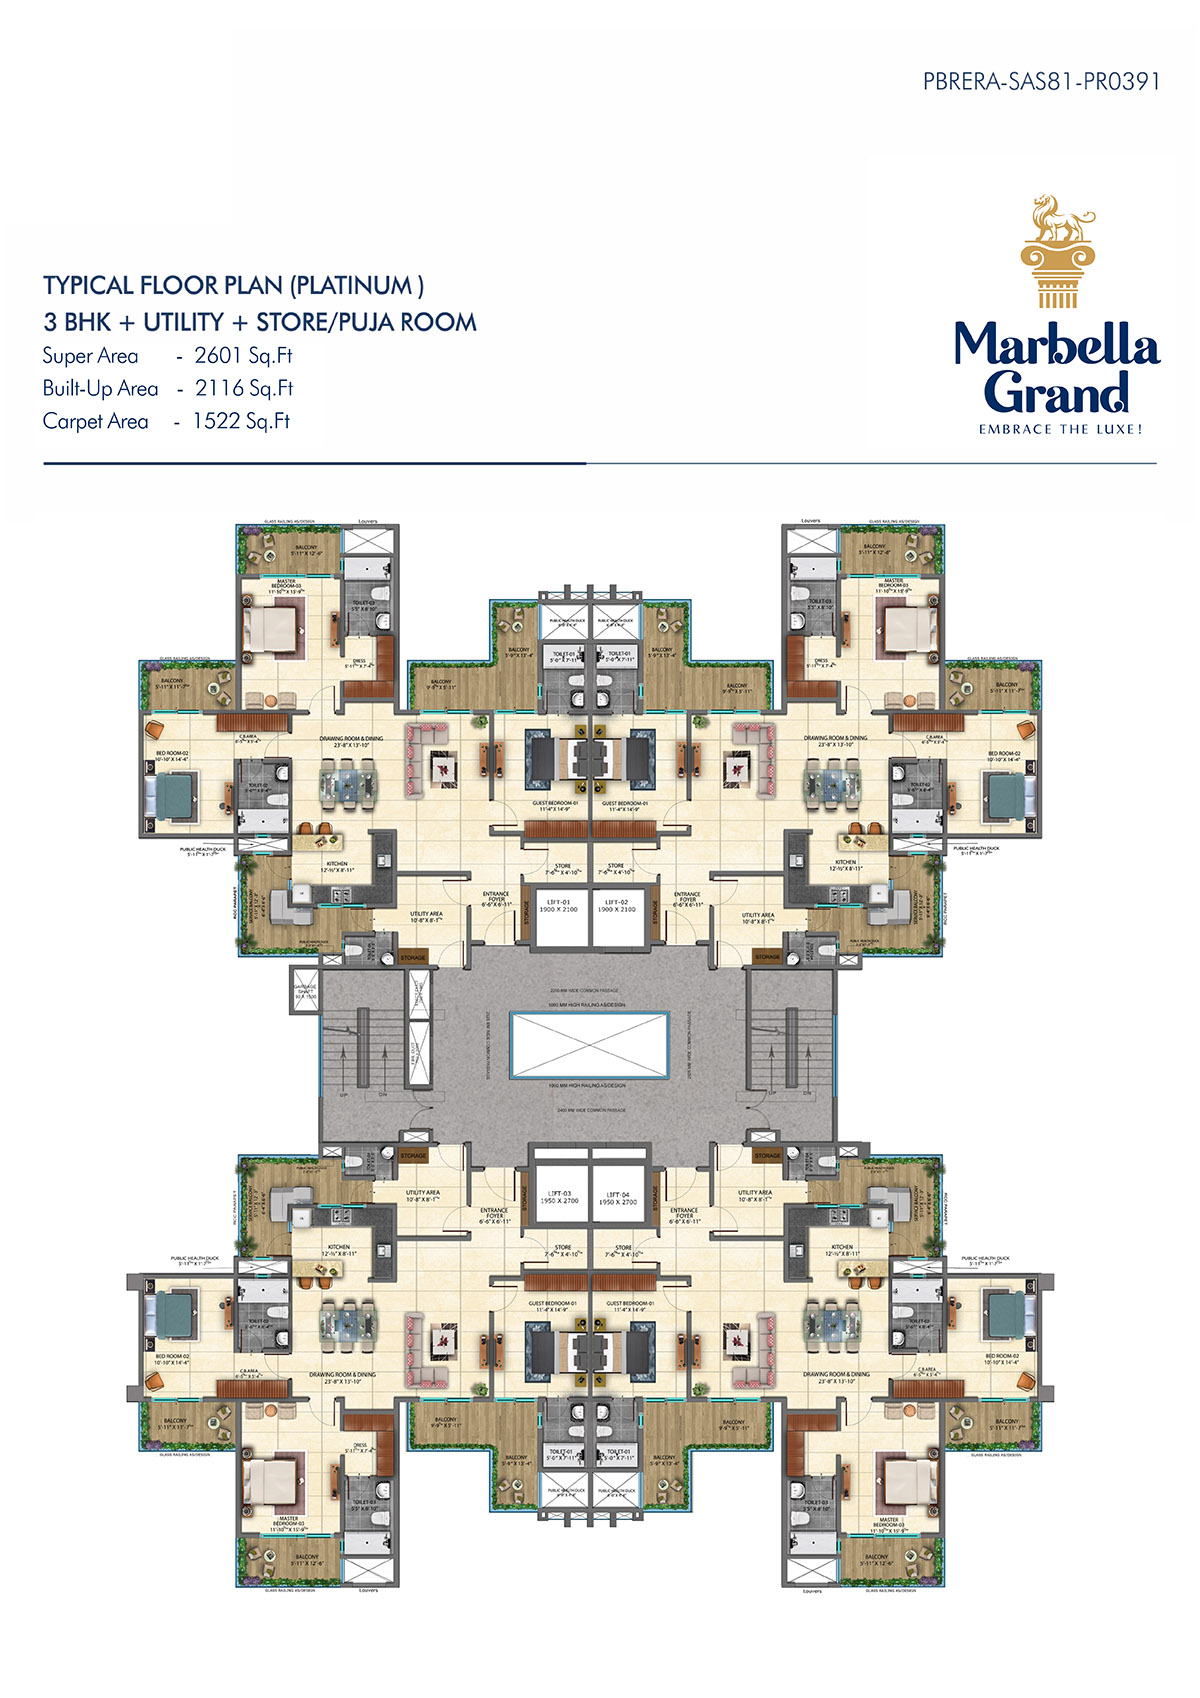 3BHK + UTILITY + TYPICAL FLOOR PLAN